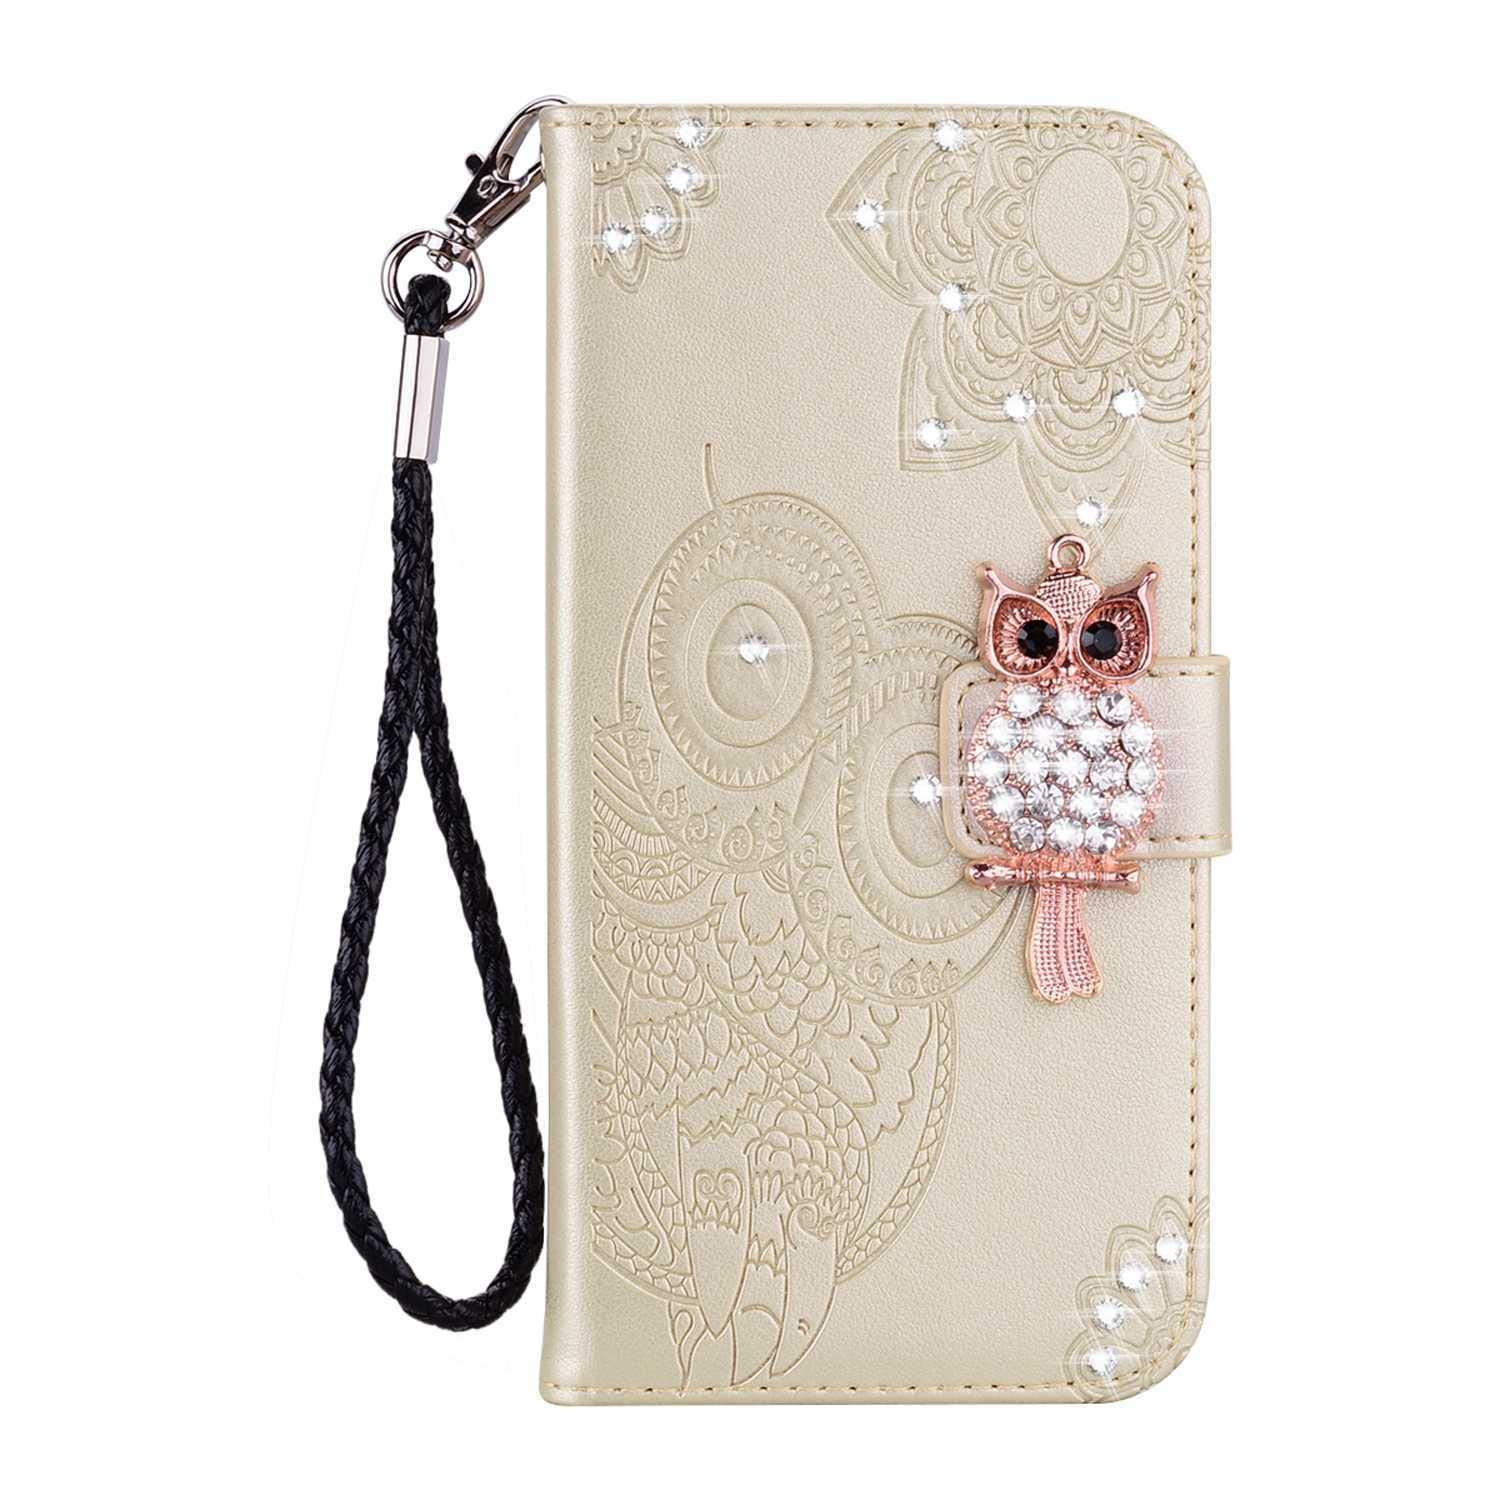 Bear Village iPhone Xs Max Case, Leather Case with Wrist Strap and Credit Card Slot, Owl Magnetic Closure Shockproof Cover for Apple iPhone Xs Max, Gold by Bear Village